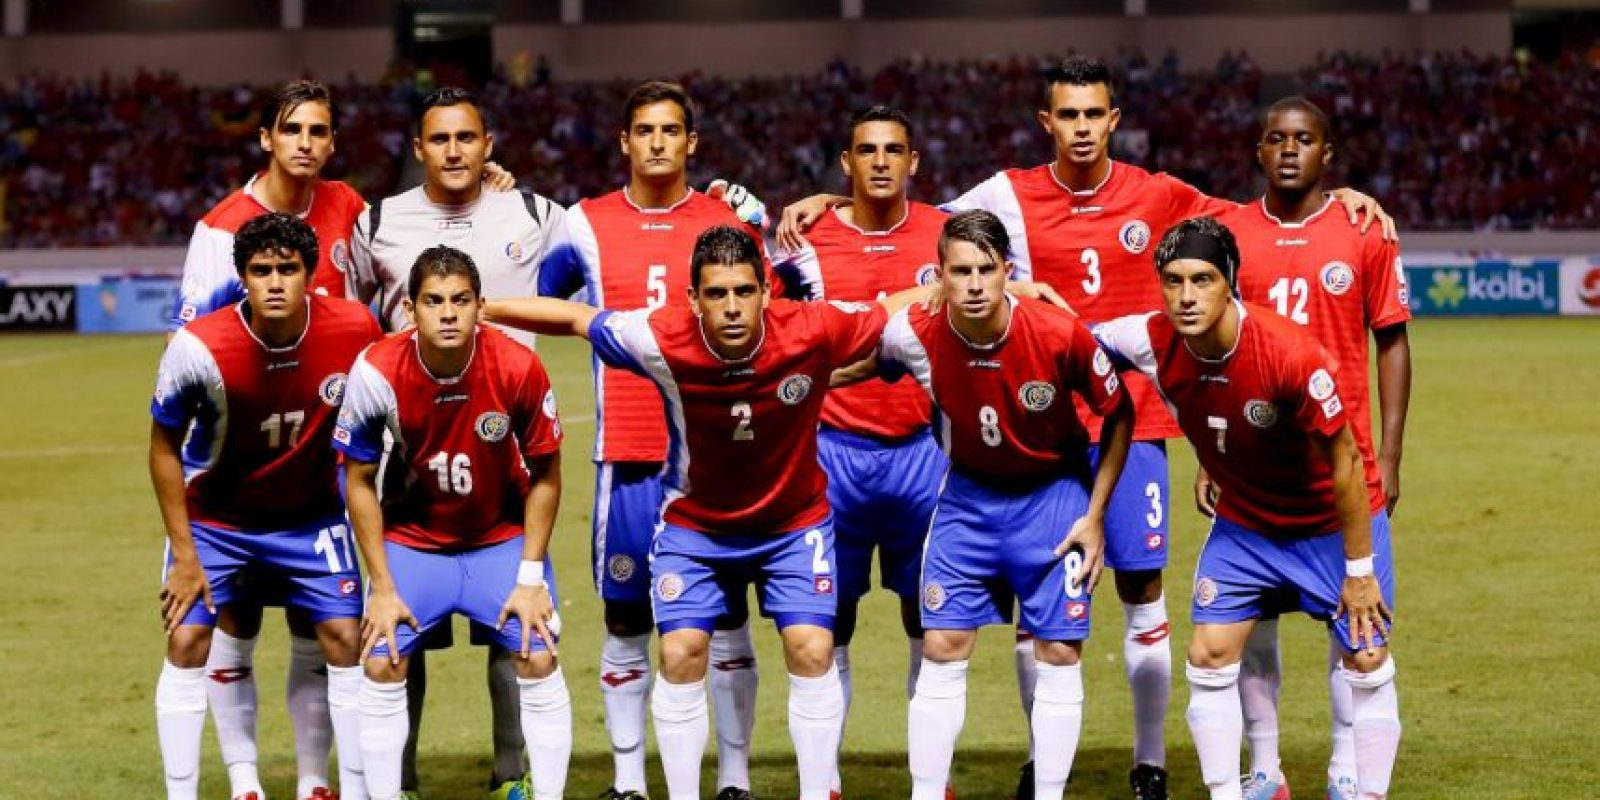 6. Costa Rica Foto: Getty Images